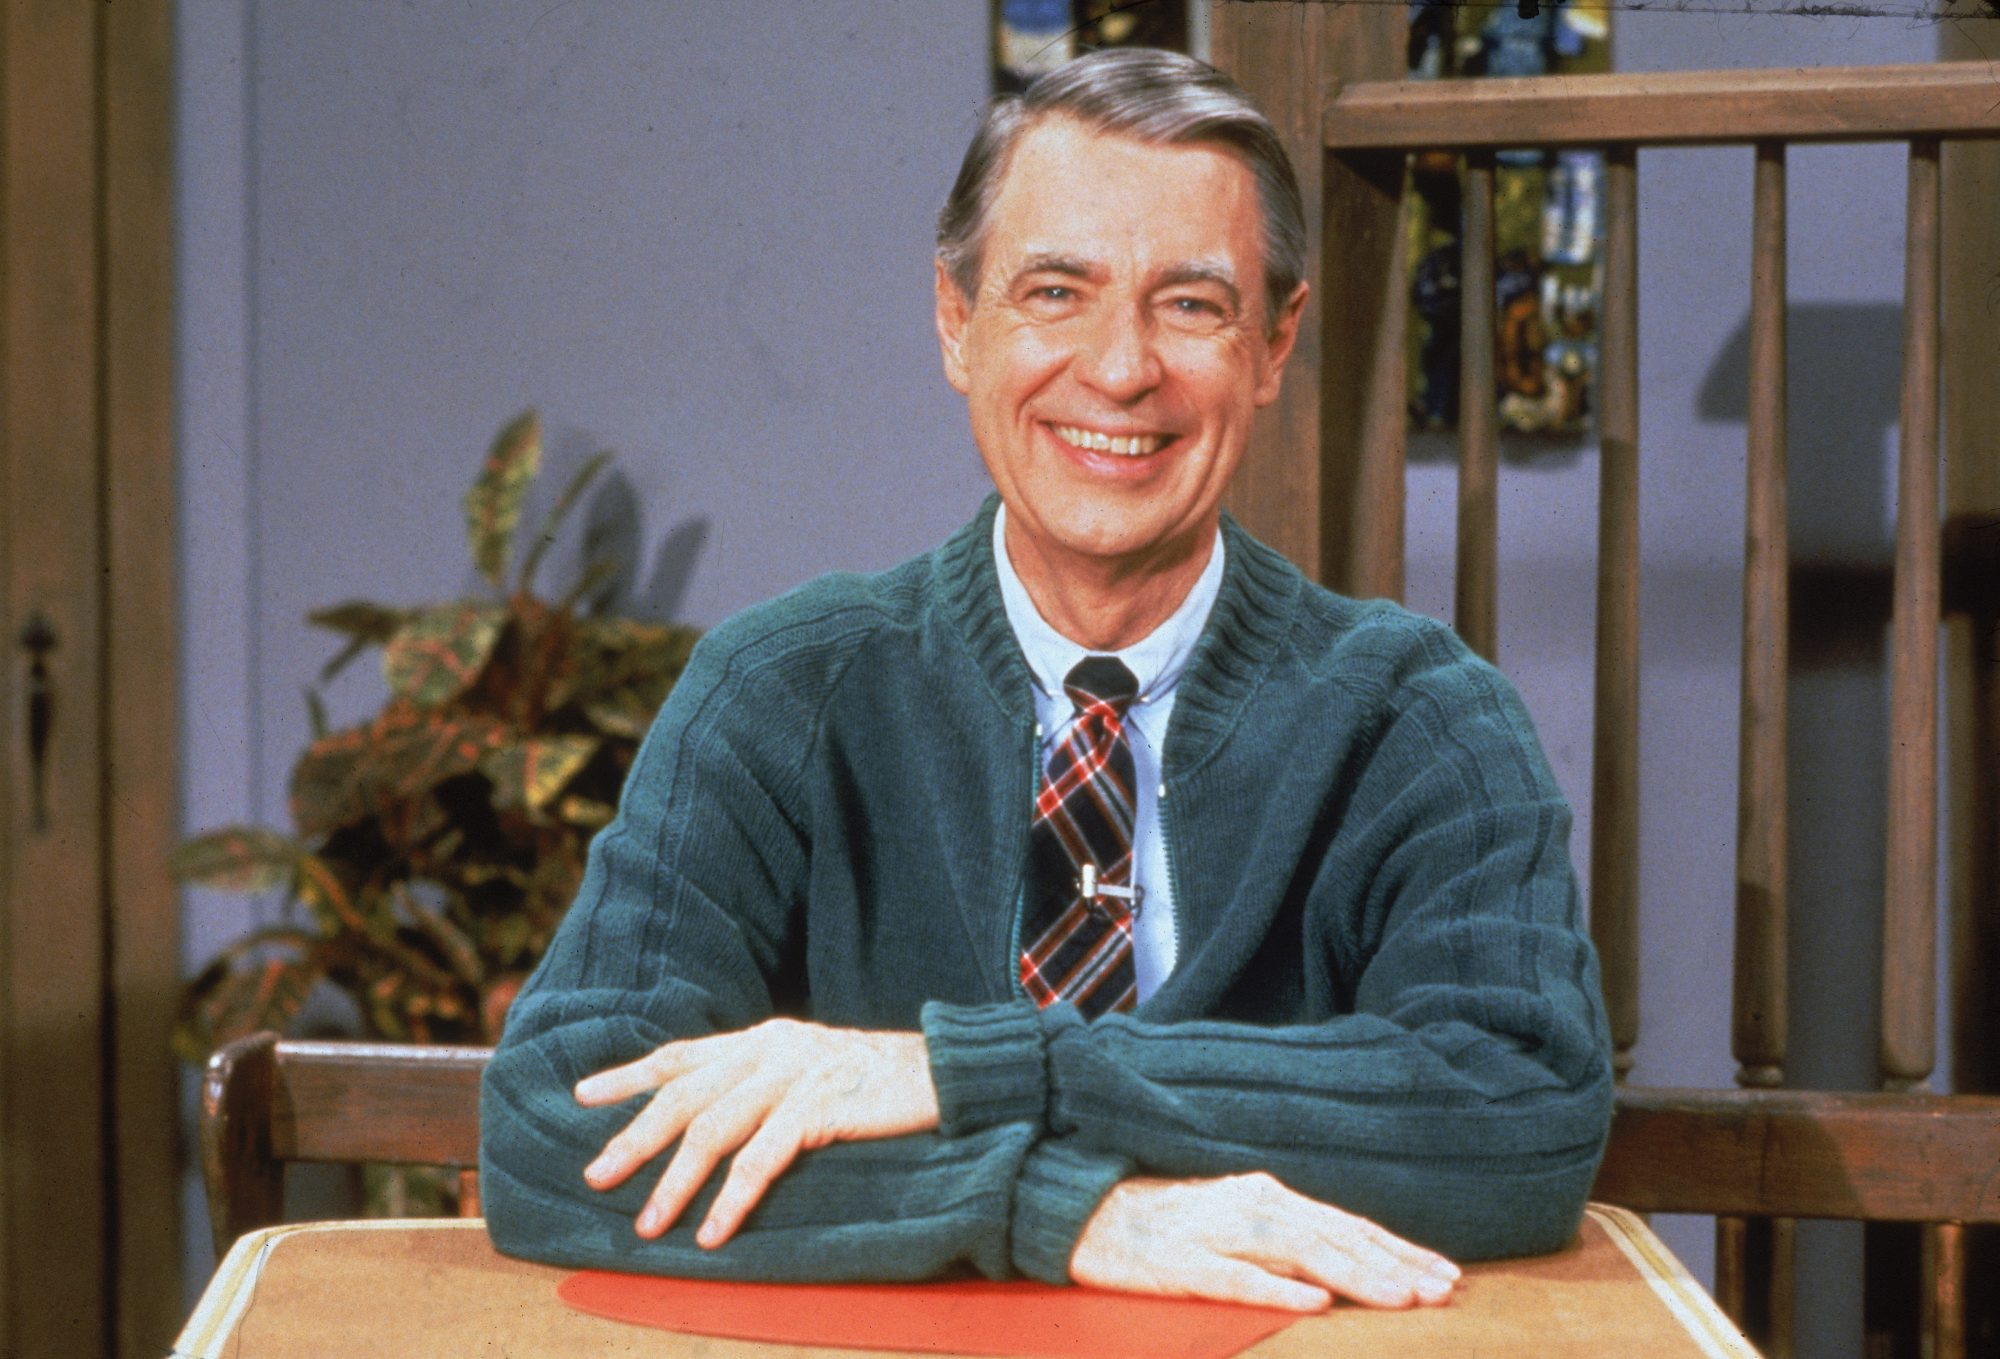 Mister Rogers Quotes That Remind Us to Be Good Neighbors